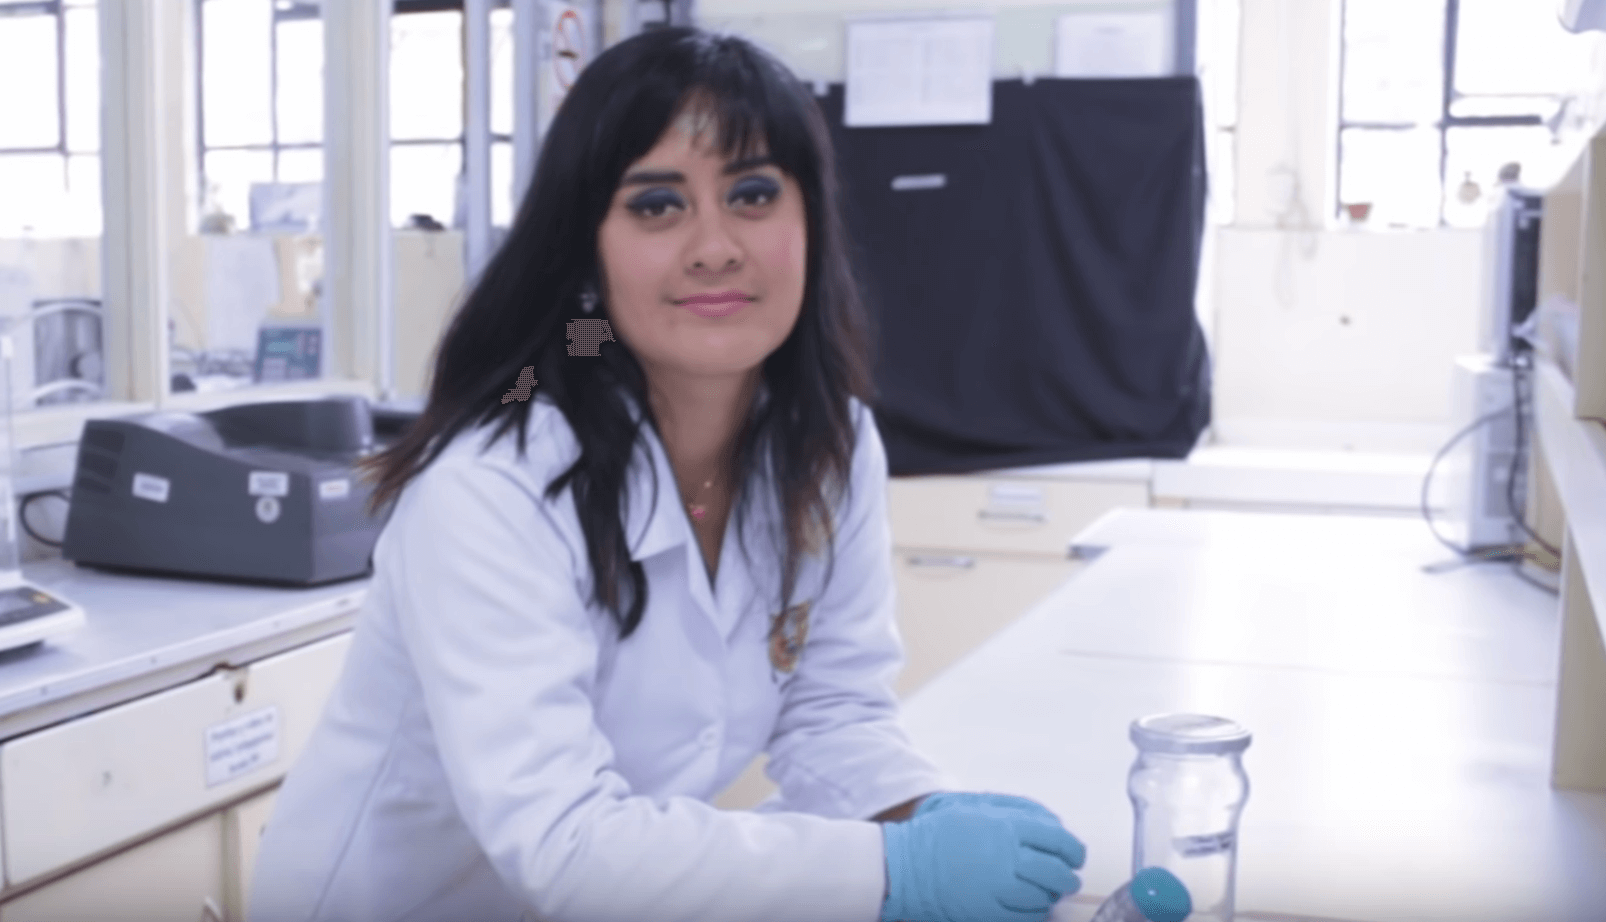 Peru biochemical engineer receives presidential scholarship for postgrad studies in UK